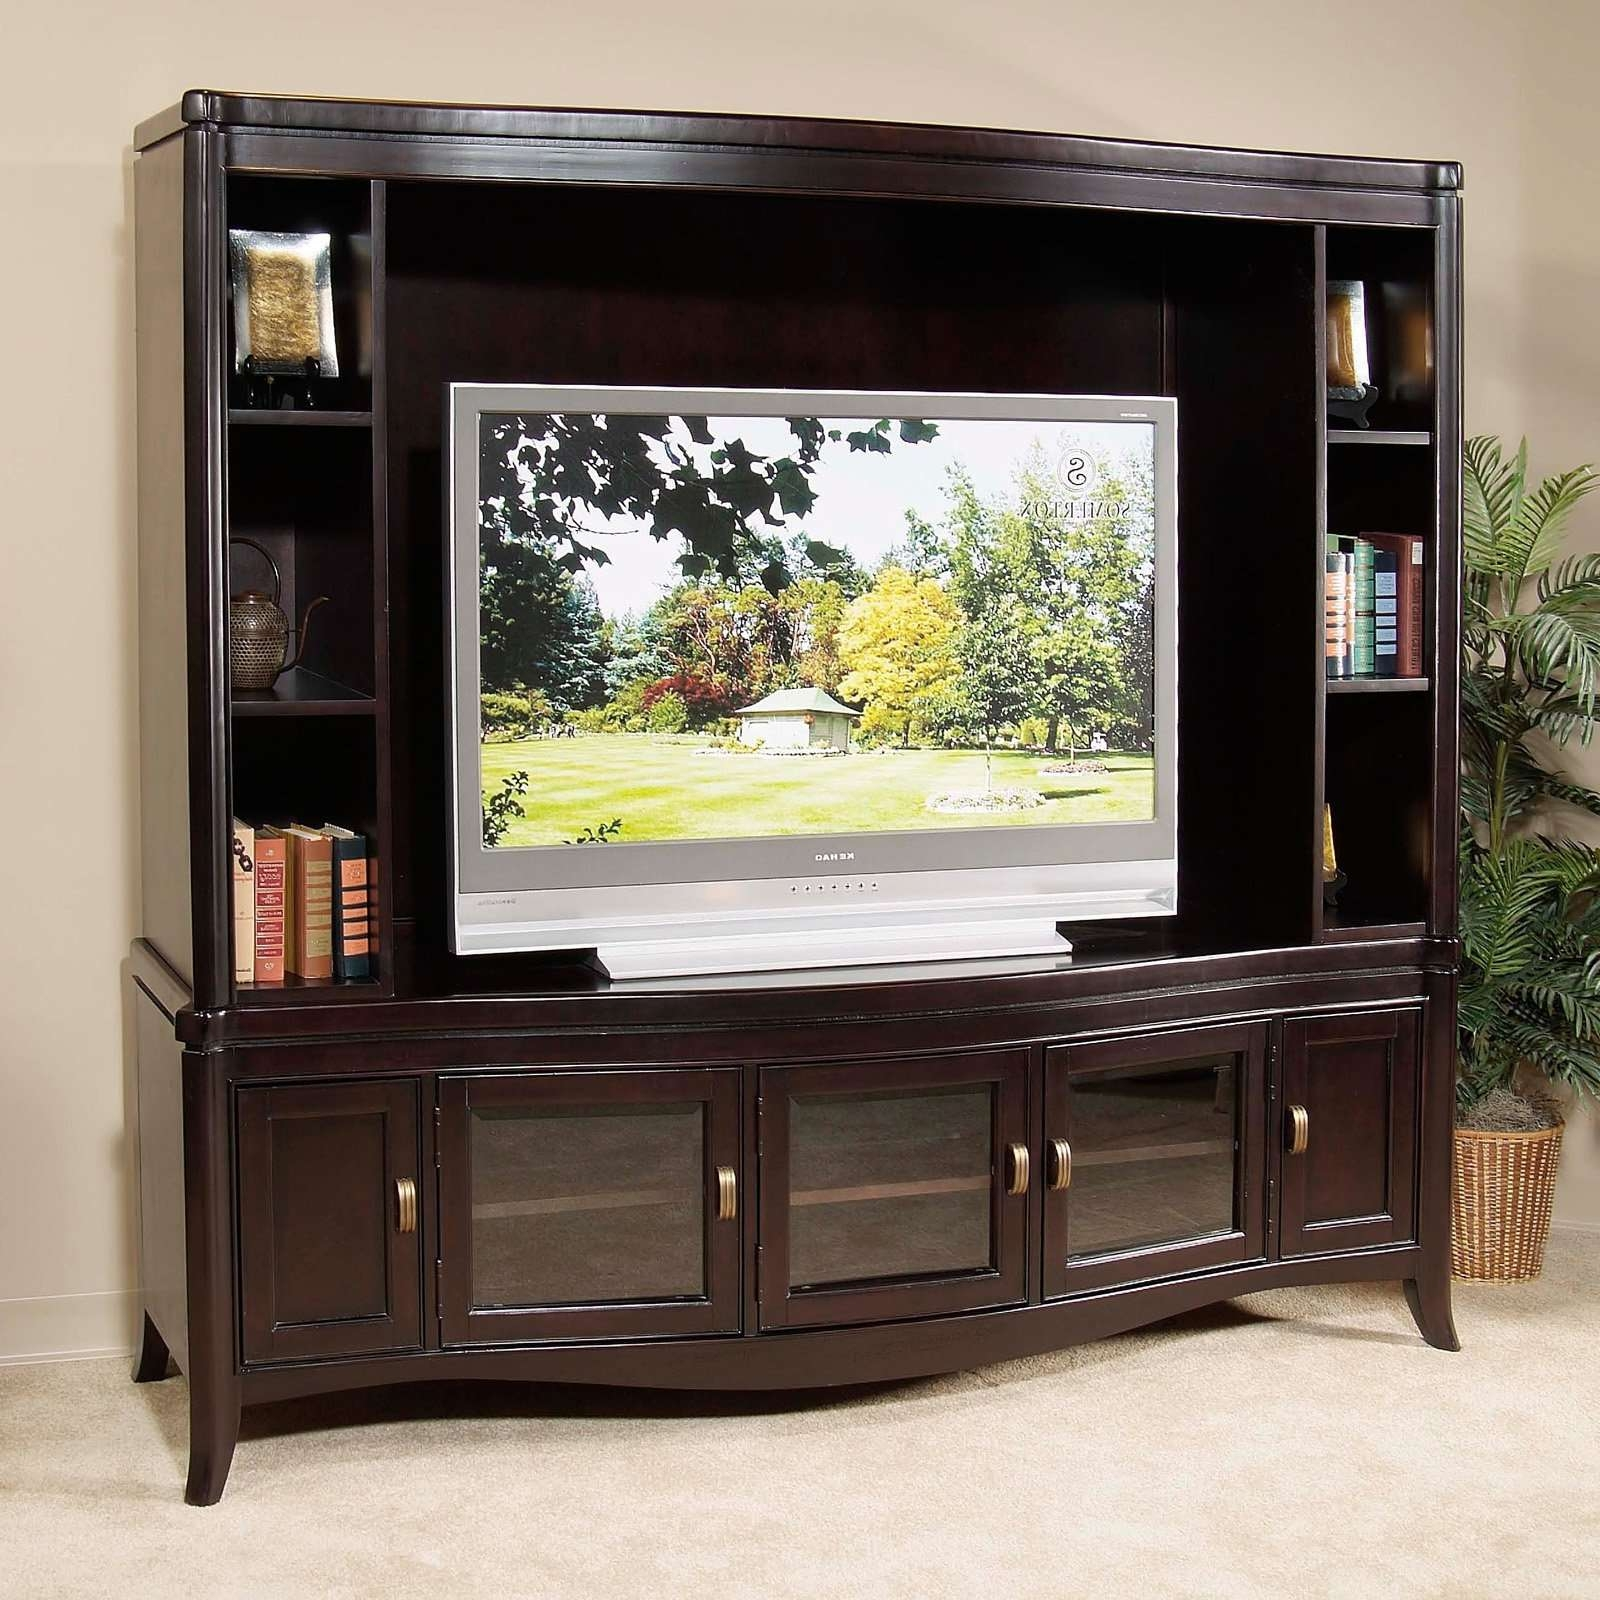 Tv : Intriguing Lockable Tv Stands Entertain Lockable Tv Stands Intended For Lockable Tv Stands (View 16 of 20)